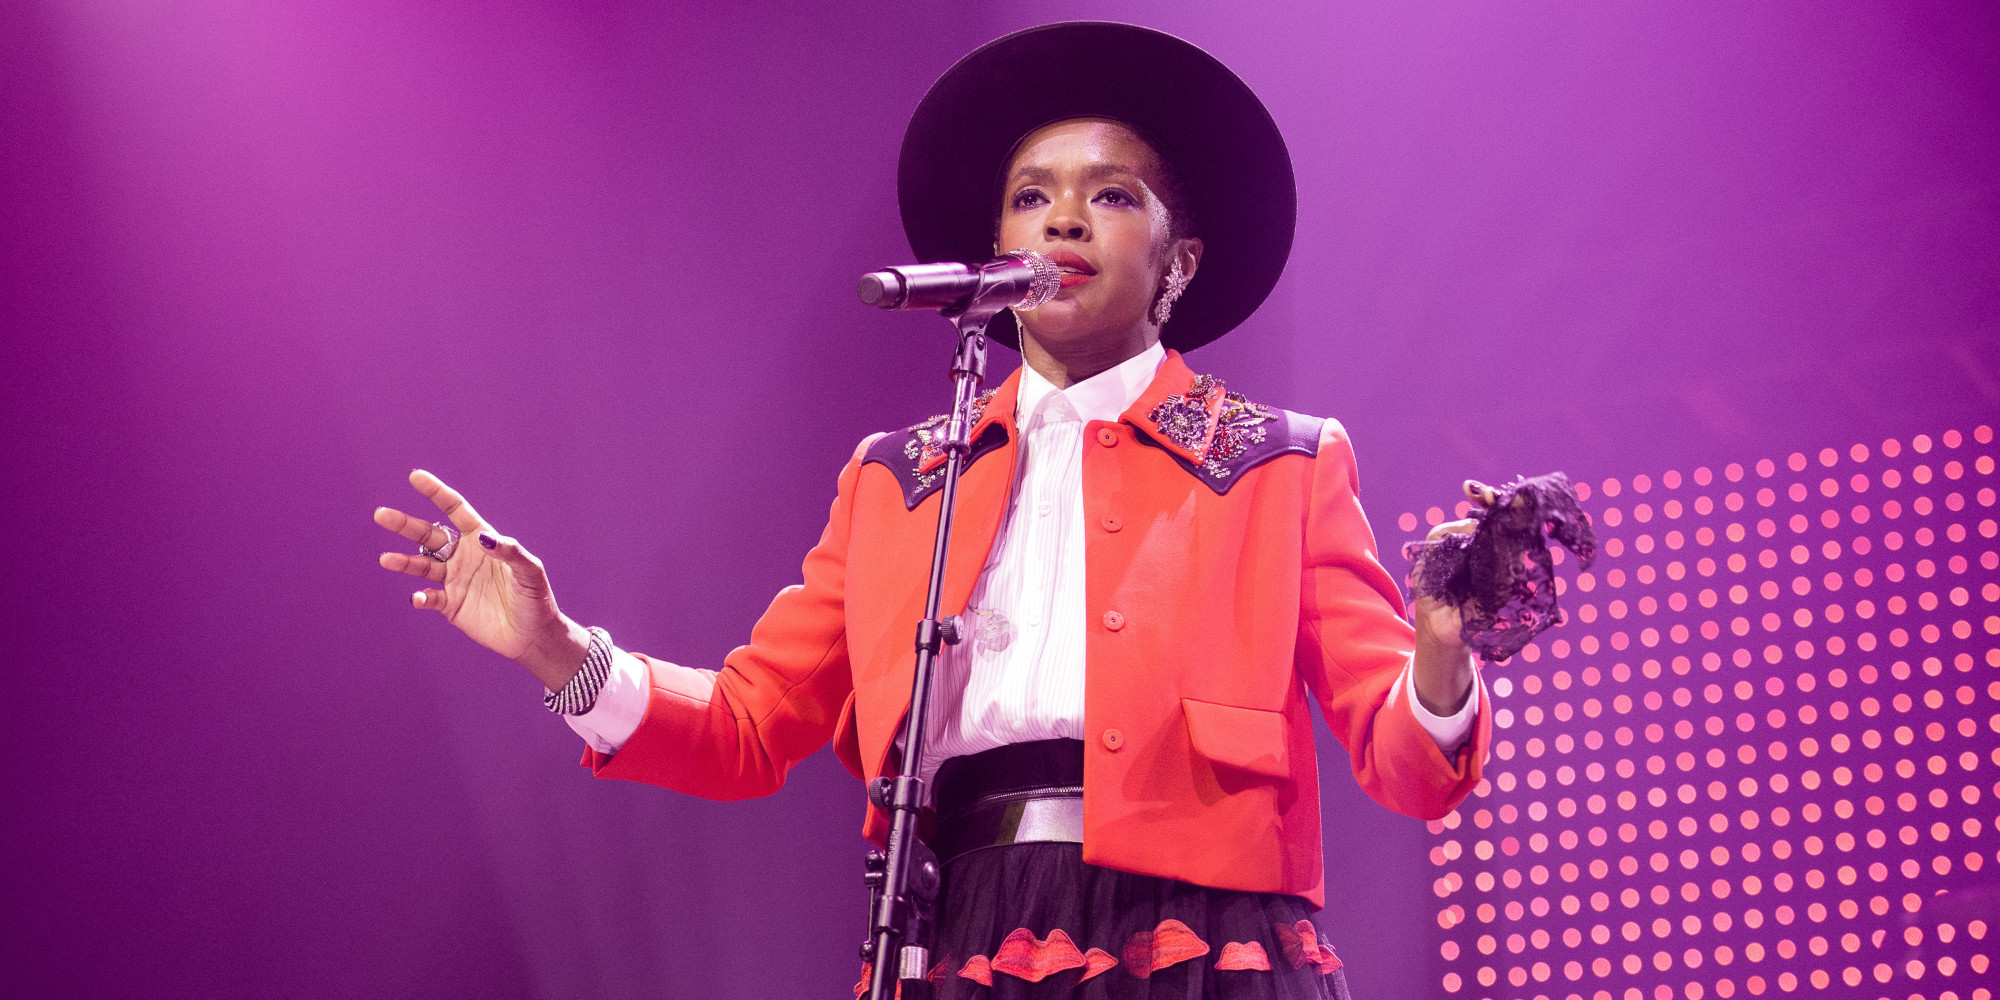 Os 20 anos de The Miseducation of Lauryn Hill